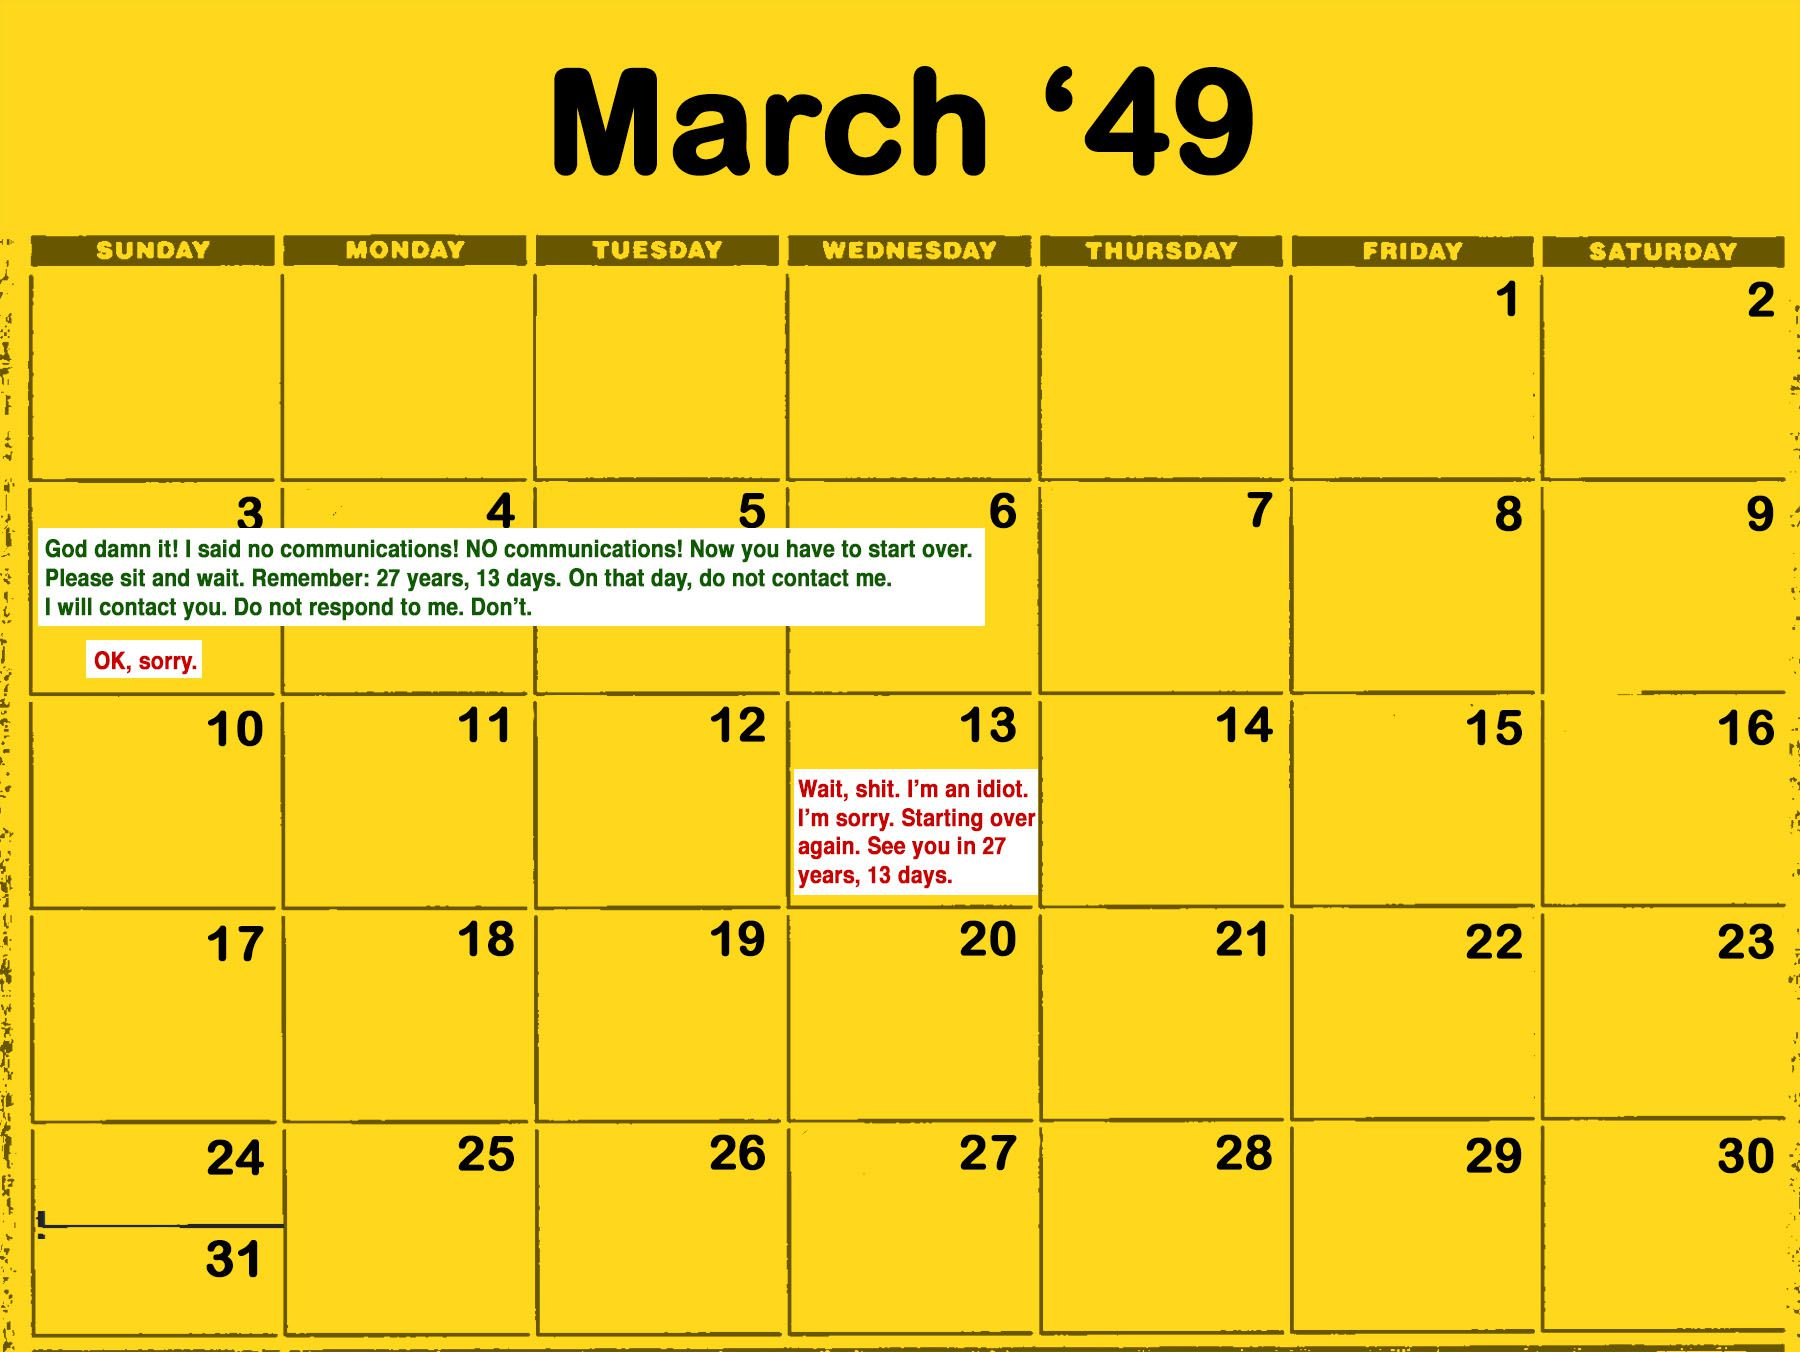 "The graphic contains a yellow calendar. At the top, the text reads ""March '49."" From March 3 to 6, in green text, it reads ""God damn it! I said no communications! NO communications! Now you have to start over. Please sit and wait. Remember: 27 years, 13 days. On that day, do not contact me. I will contact you. Do not respond to me. Don't."" And in red, the text reads, ""OK, sorry."" On the 13th, the red text reads, ""Wait, shit. I'm an idiot. I'm sorry. Starting over again. See you in 27 years, 13 days."""